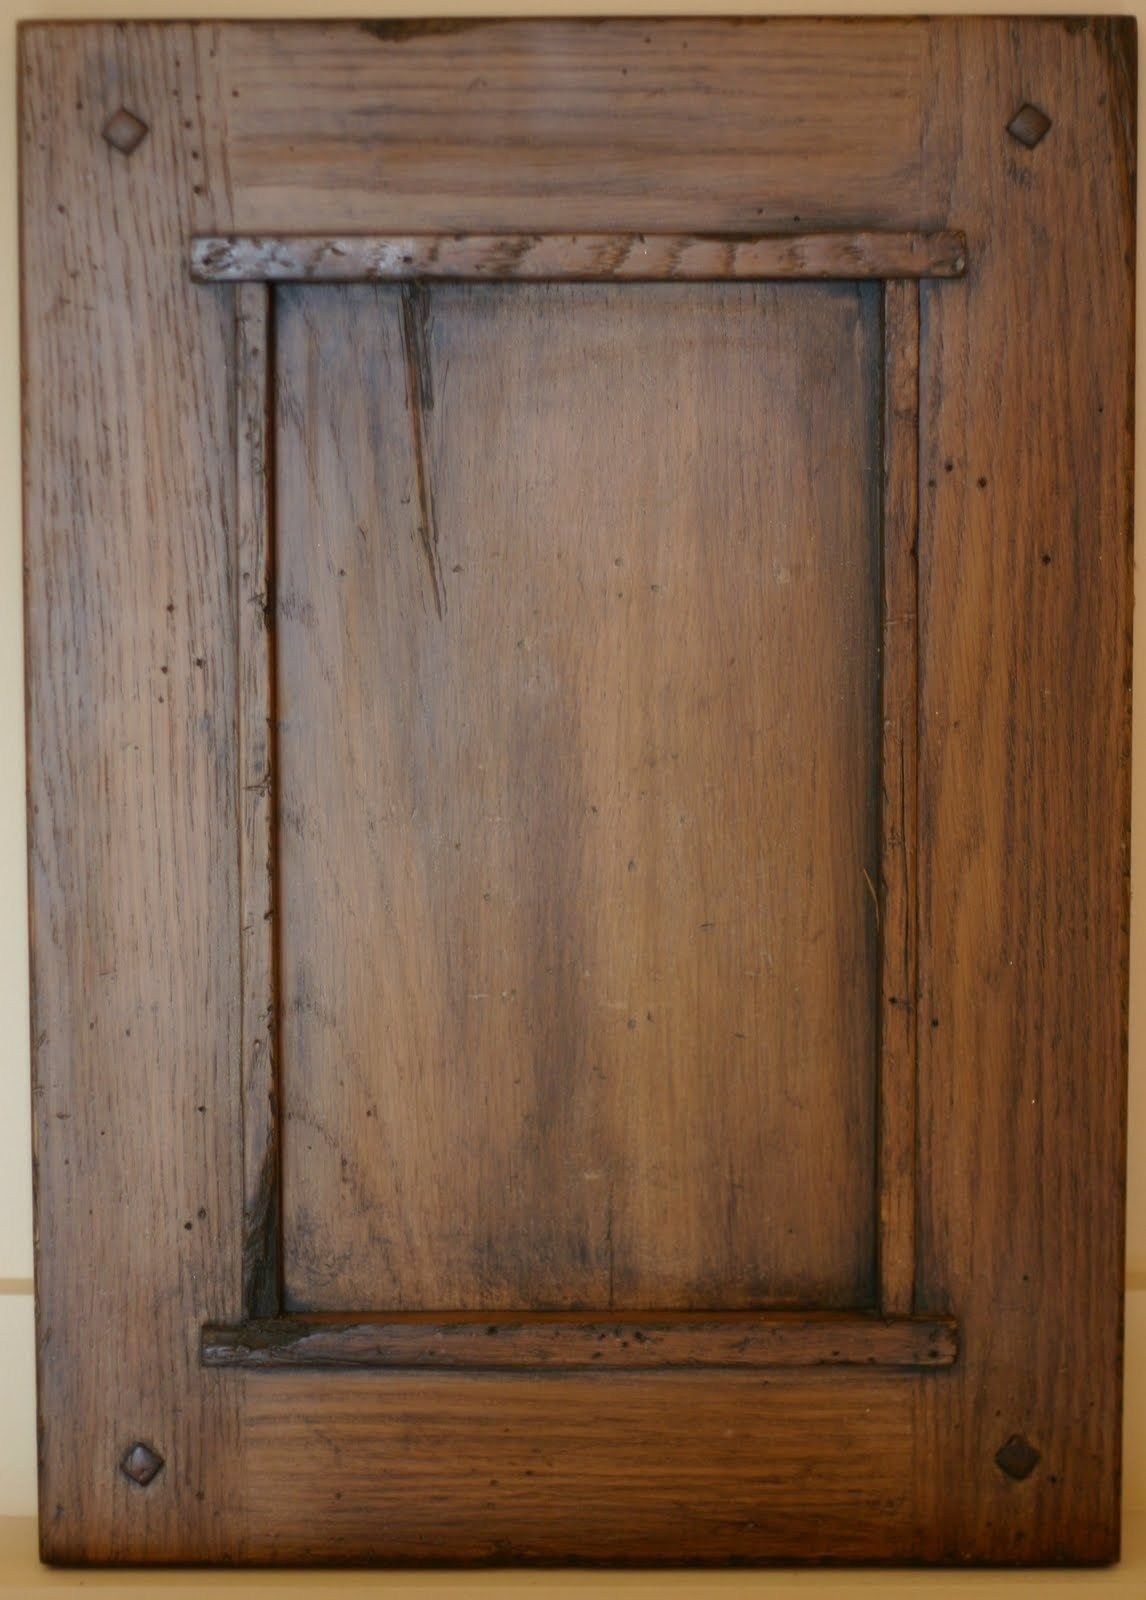 13 Genius Initiatives of How to Build Rustic Wood Cabinet Doors - Cabinet door designs, Rustic wood cabinets, Rustic kitchen cabinets, Wood cabinet doors, Rustic cabinet doors, Rustic kitchen - Because this one has remarkable design which will amaze you properly, the antique components will be shown by Rustic Wood Cabinet Doors in your house  The